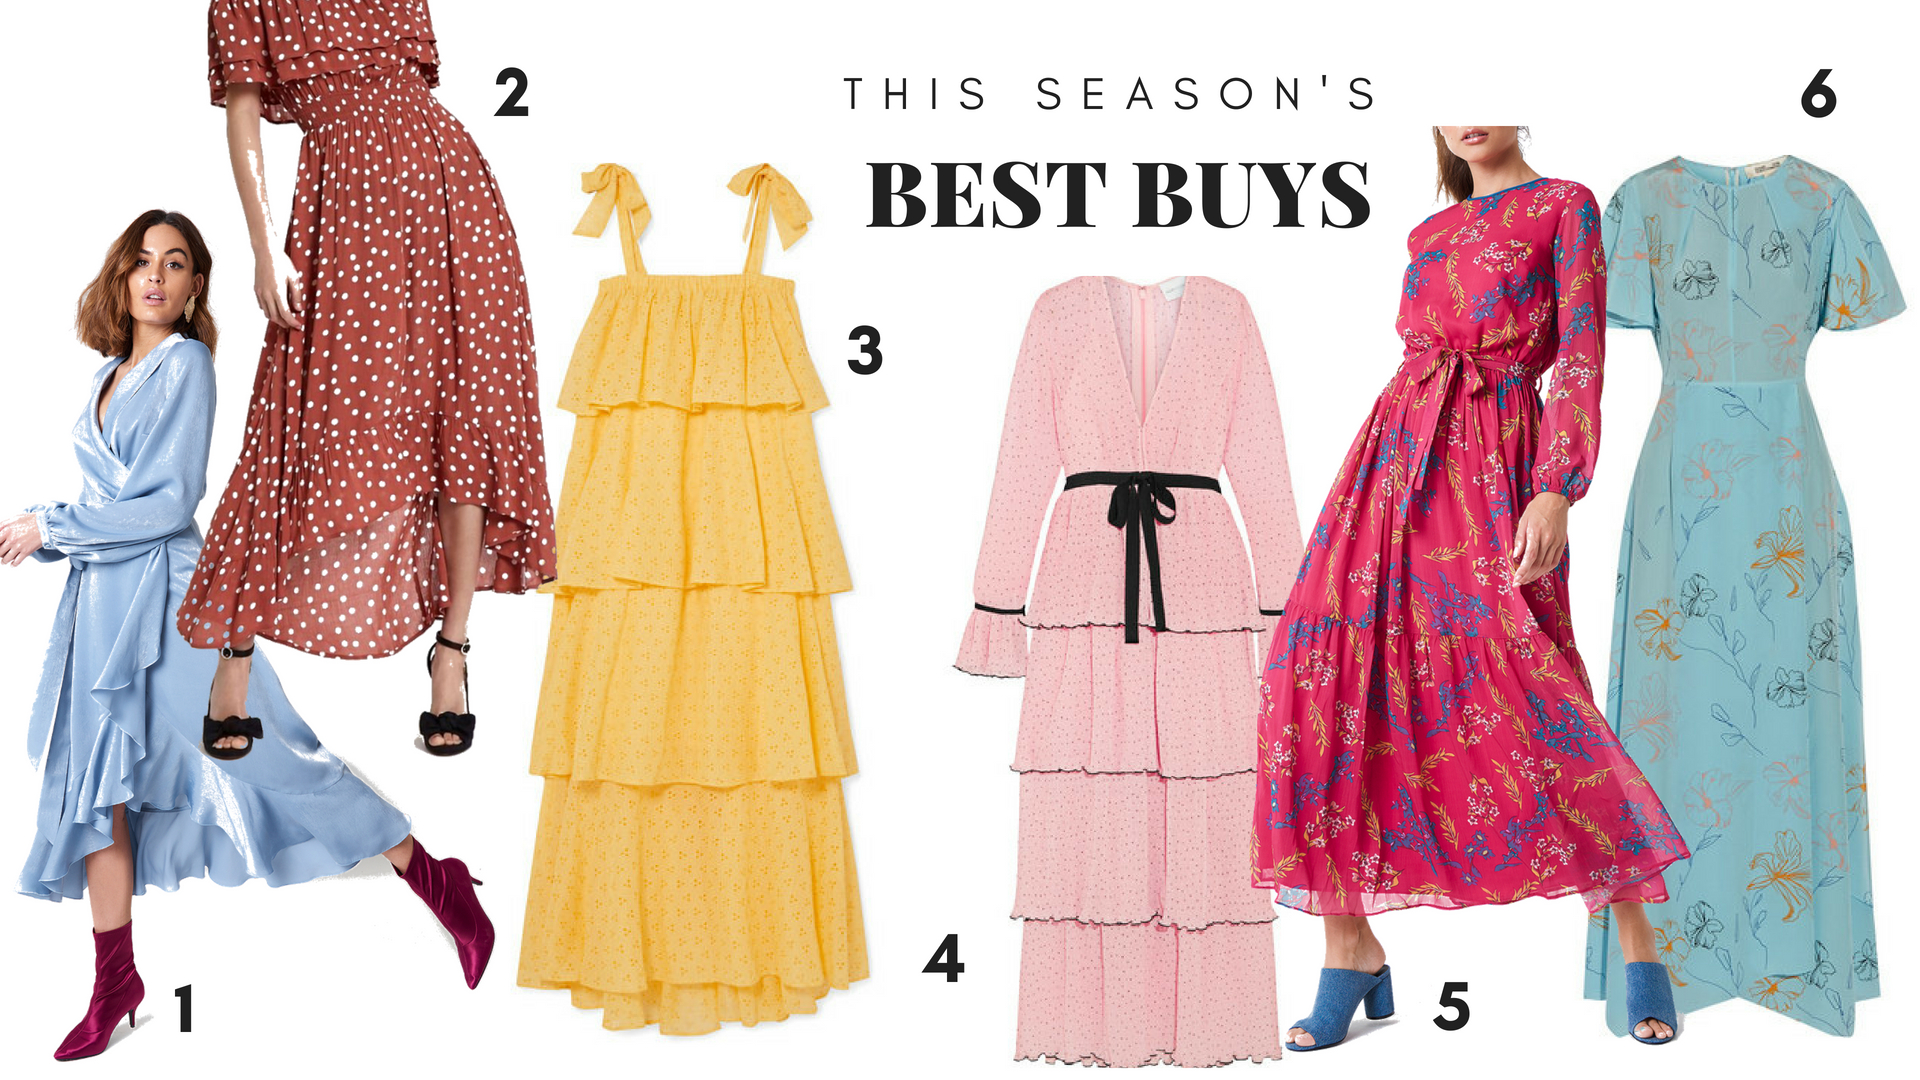 Maxi dresses - this season's best buys